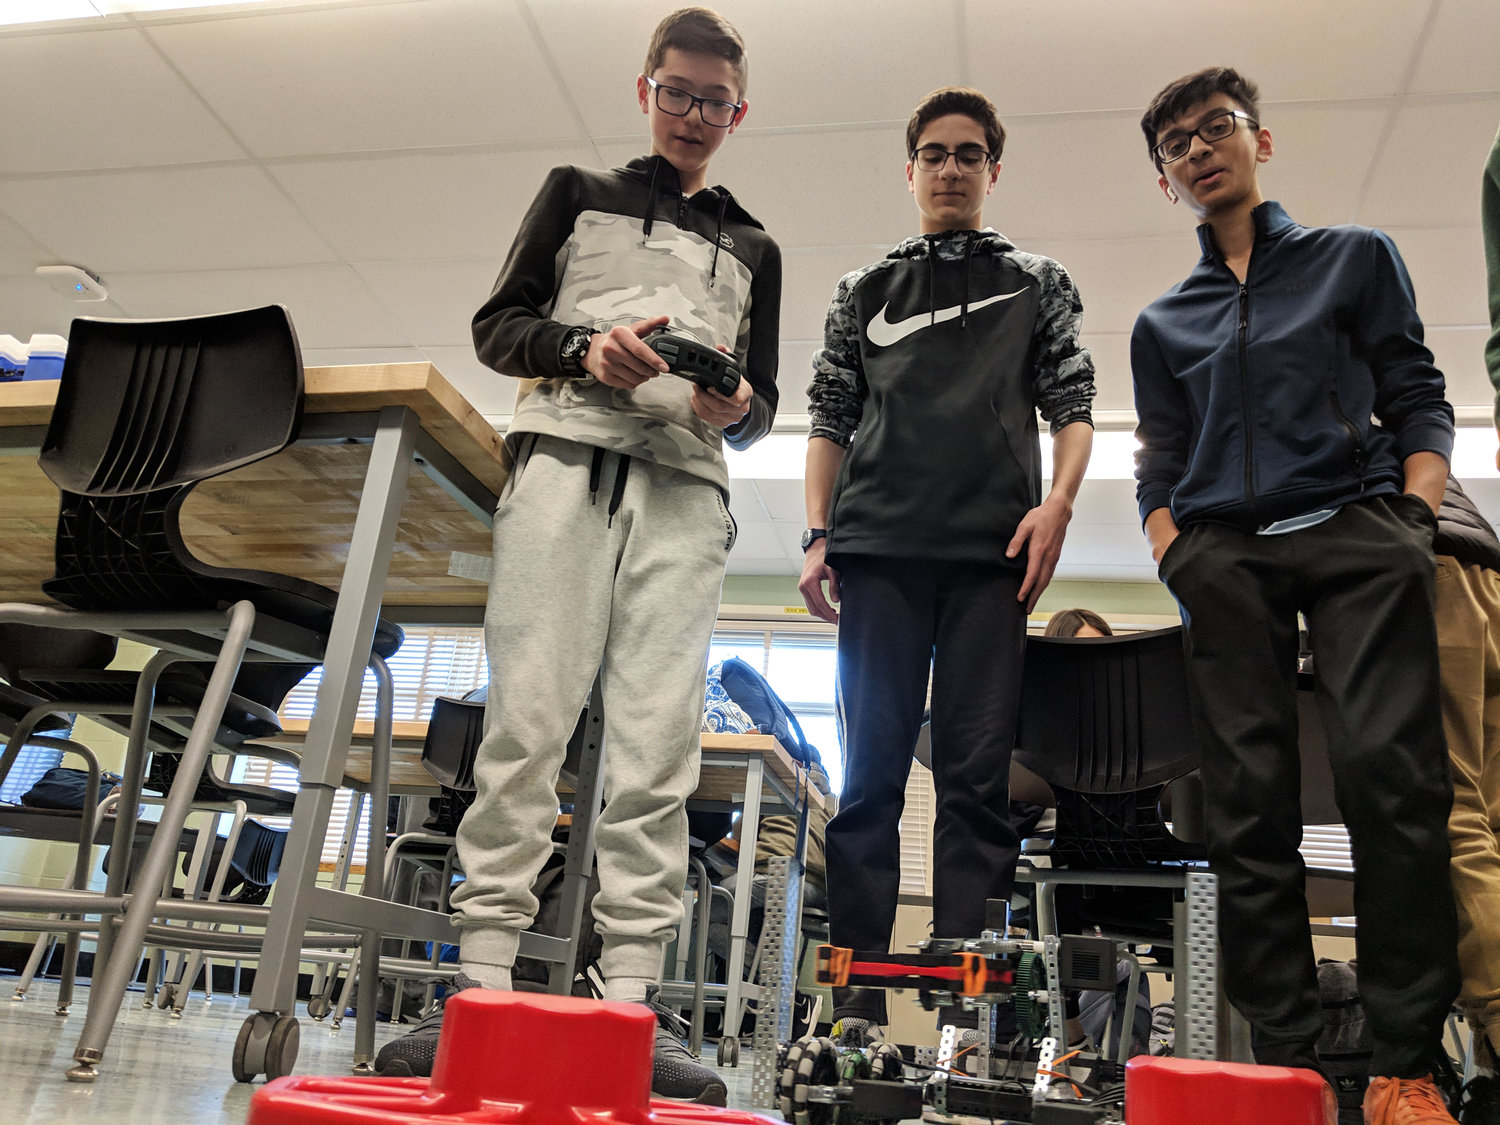 Brandon Lin, James Lasalle and Arso Zafar demonstrated their robot's dexterity as it lifted and flipped plastic caps.